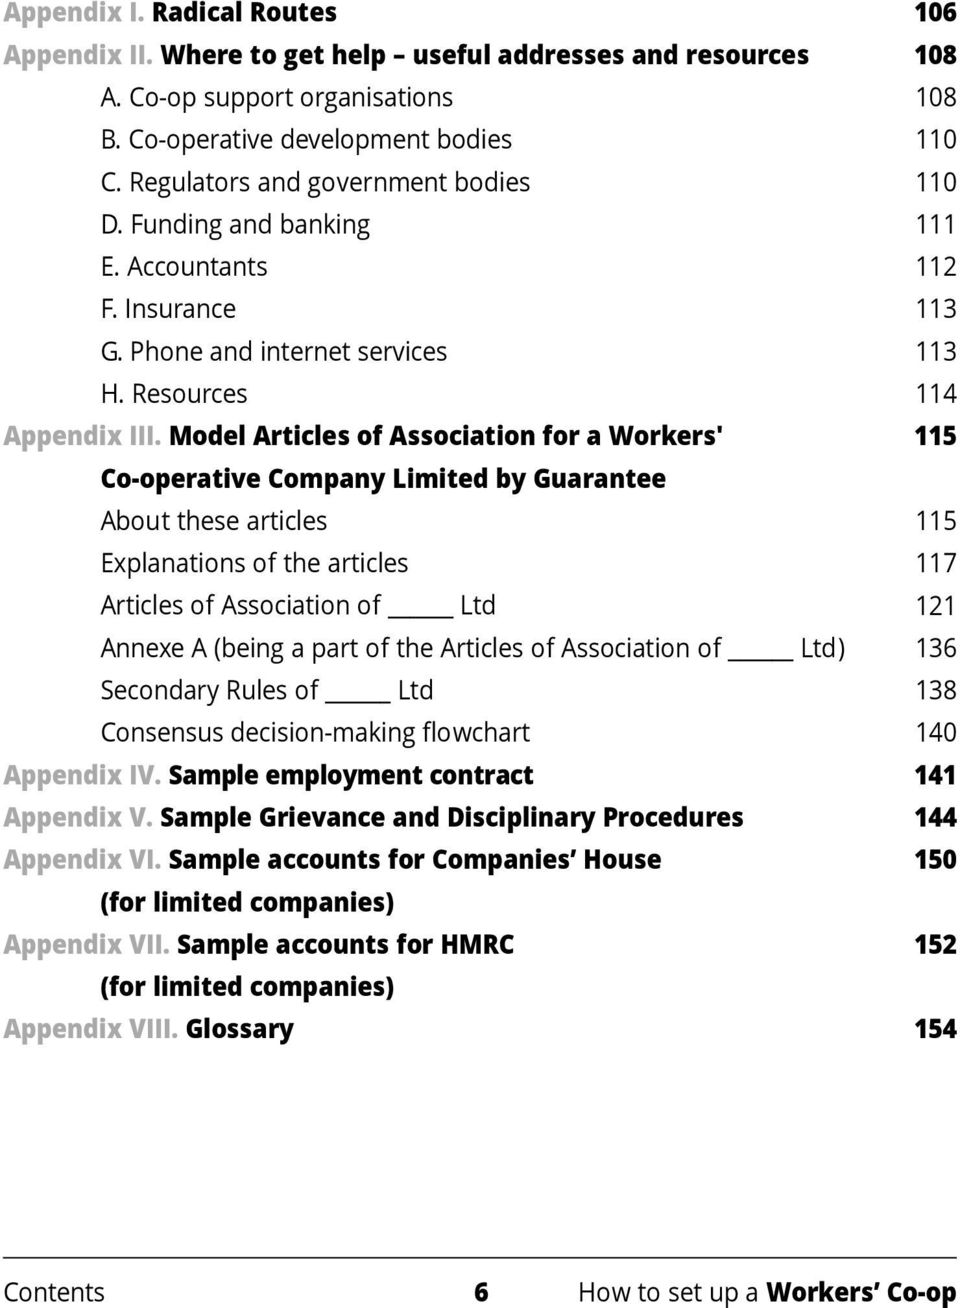 Model Articles of Association for a Workers' Co-operative Company Limited by Guarantee About these articles Explanations of the articles Articles of Association of Ltd Annexe A (being a part of the